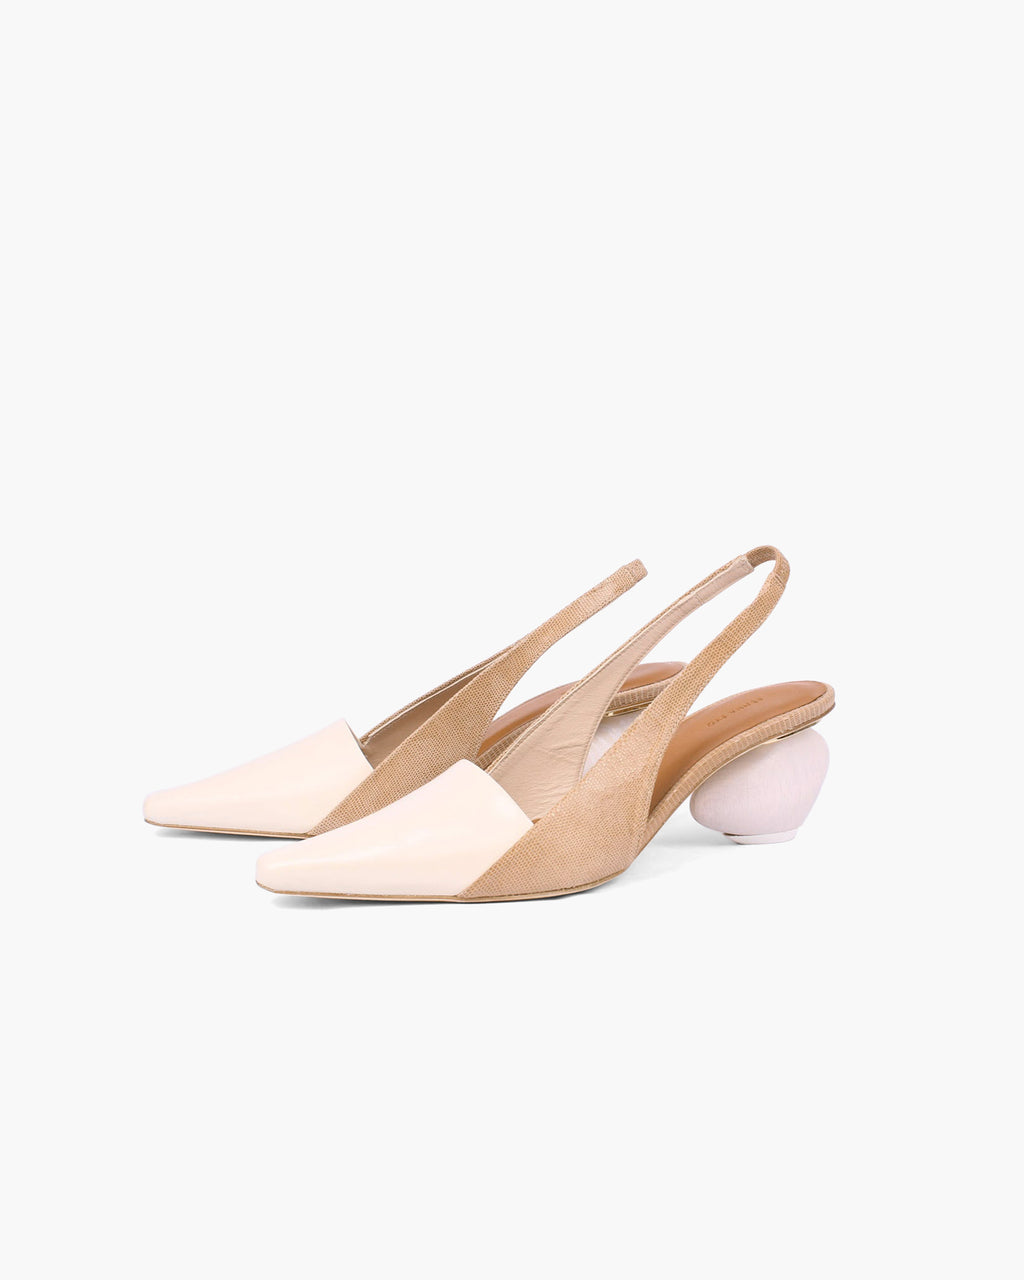 Taylor Slingbacks Leather Lizard Taupe + White Wood Heels